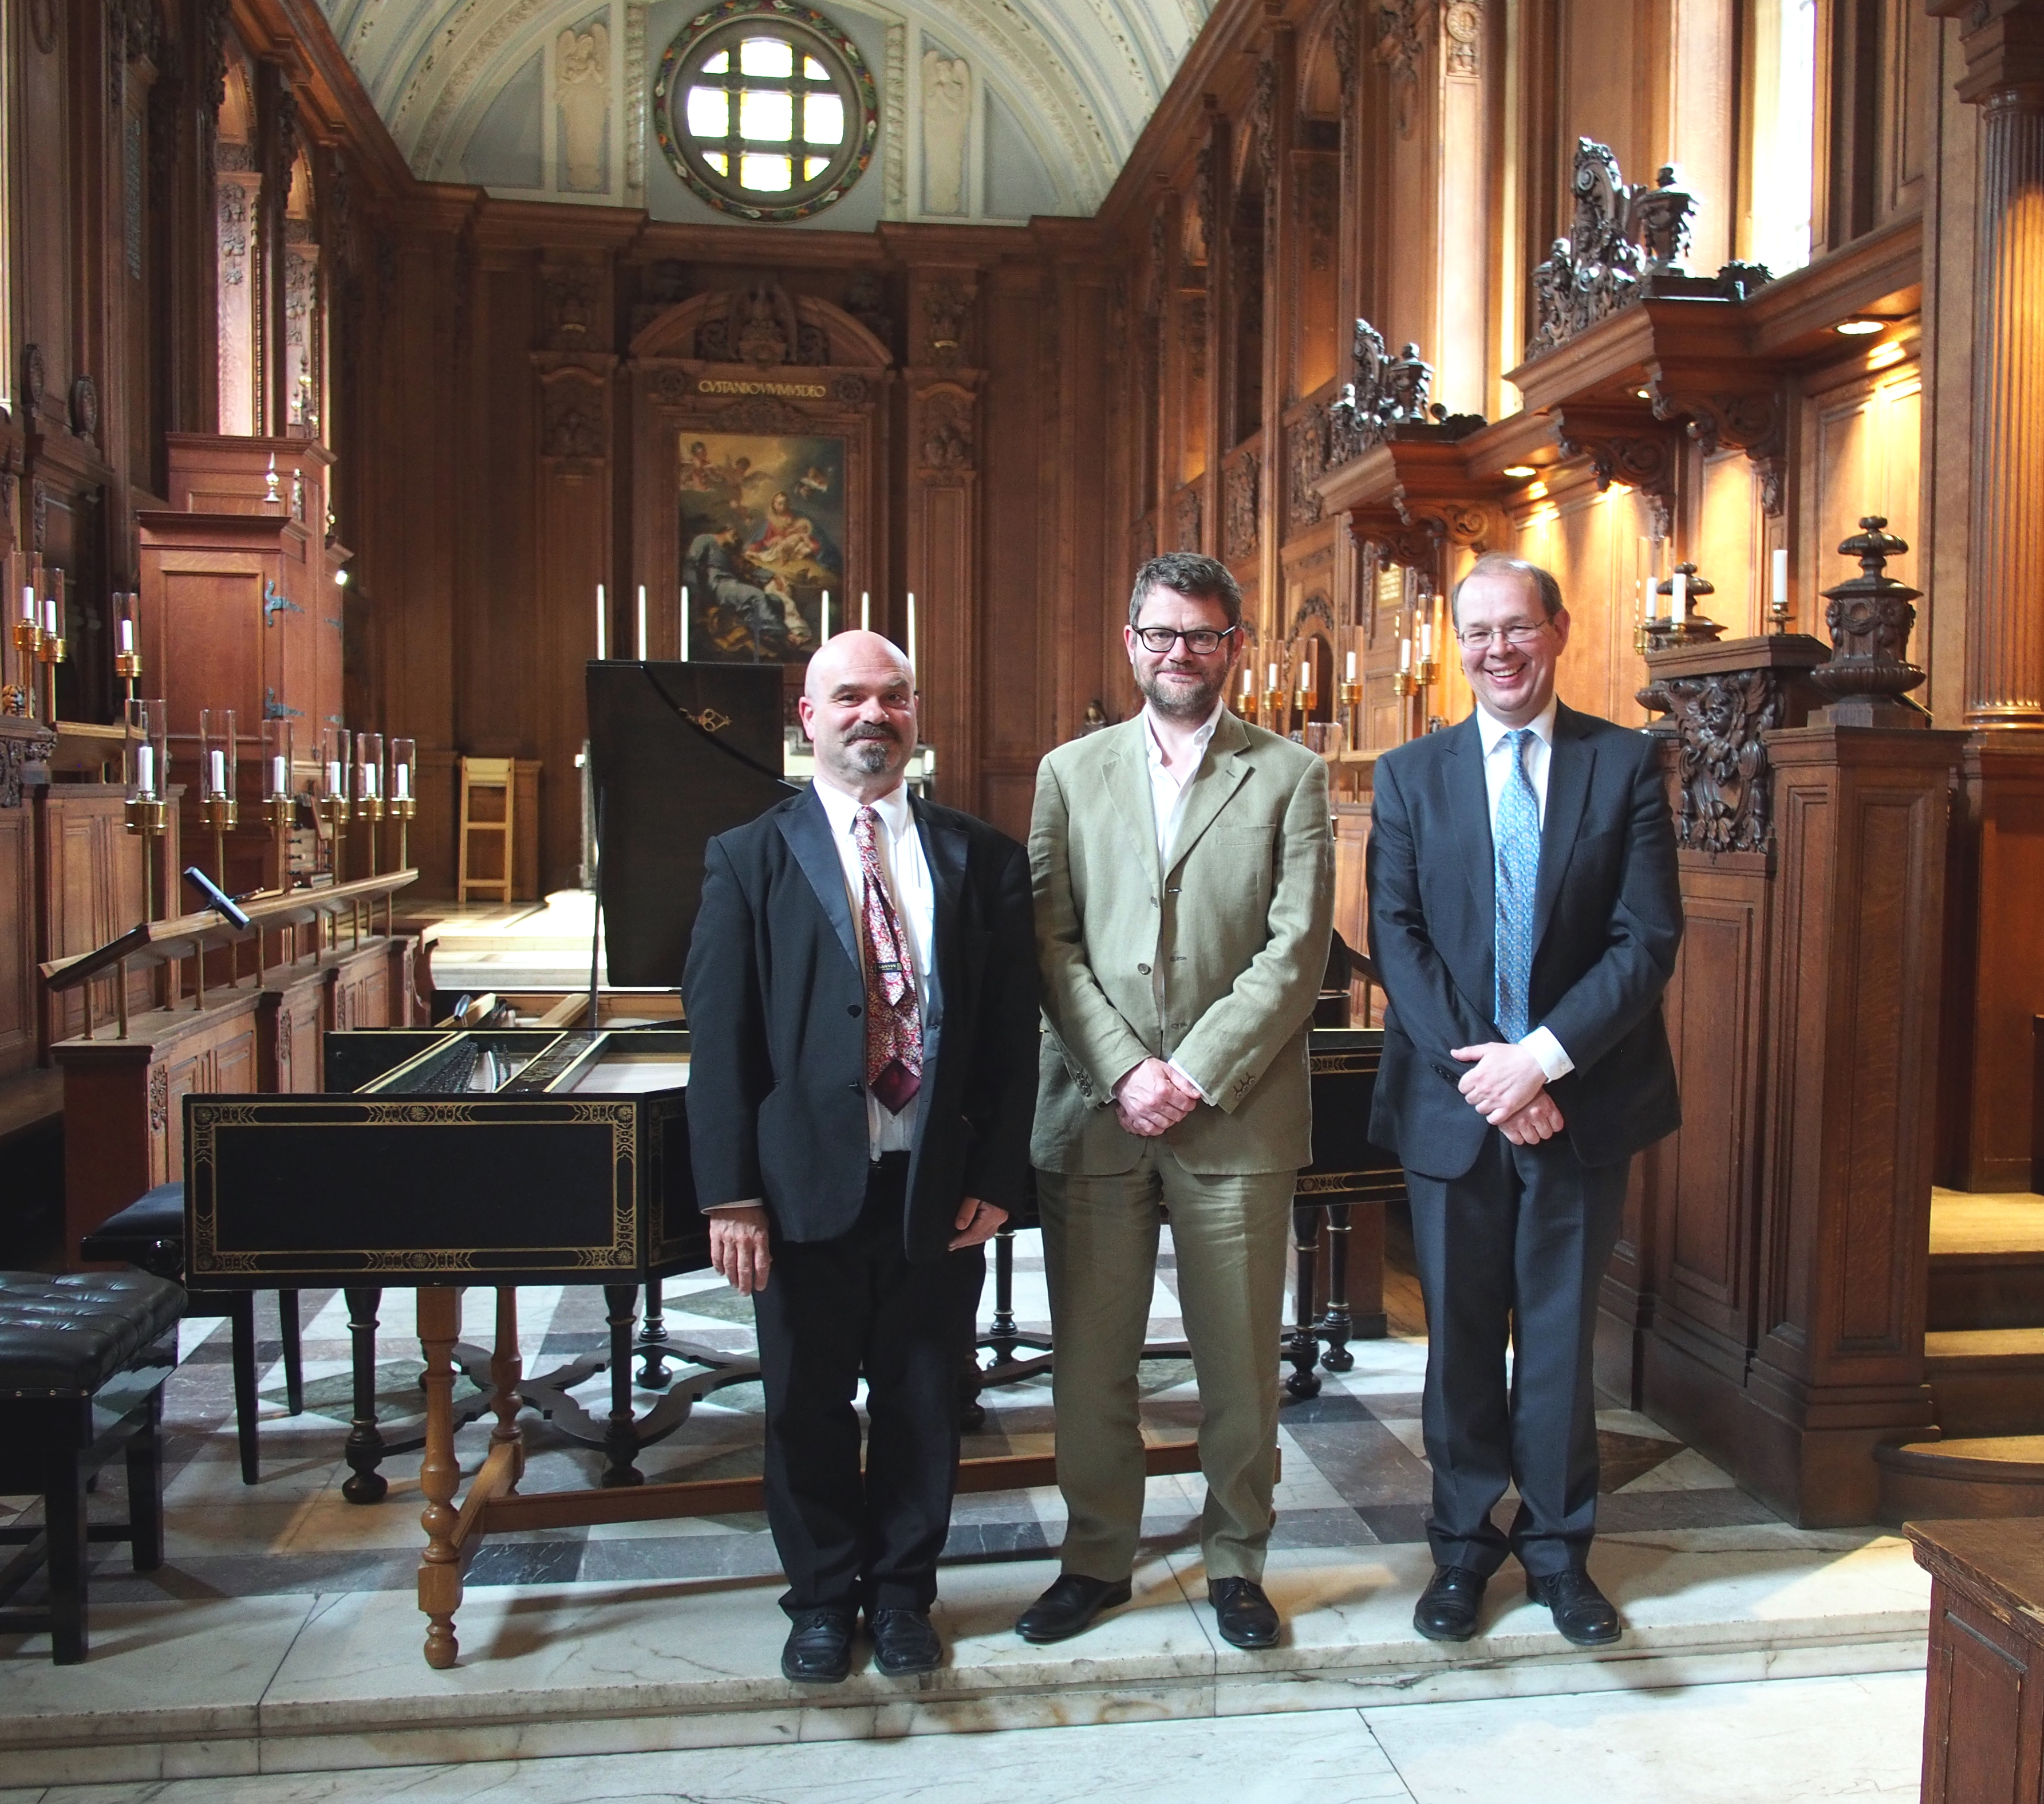 Francis Knights, Music Fellow at Fitzwilliam College, pictured right, with the other two organisers of the festival